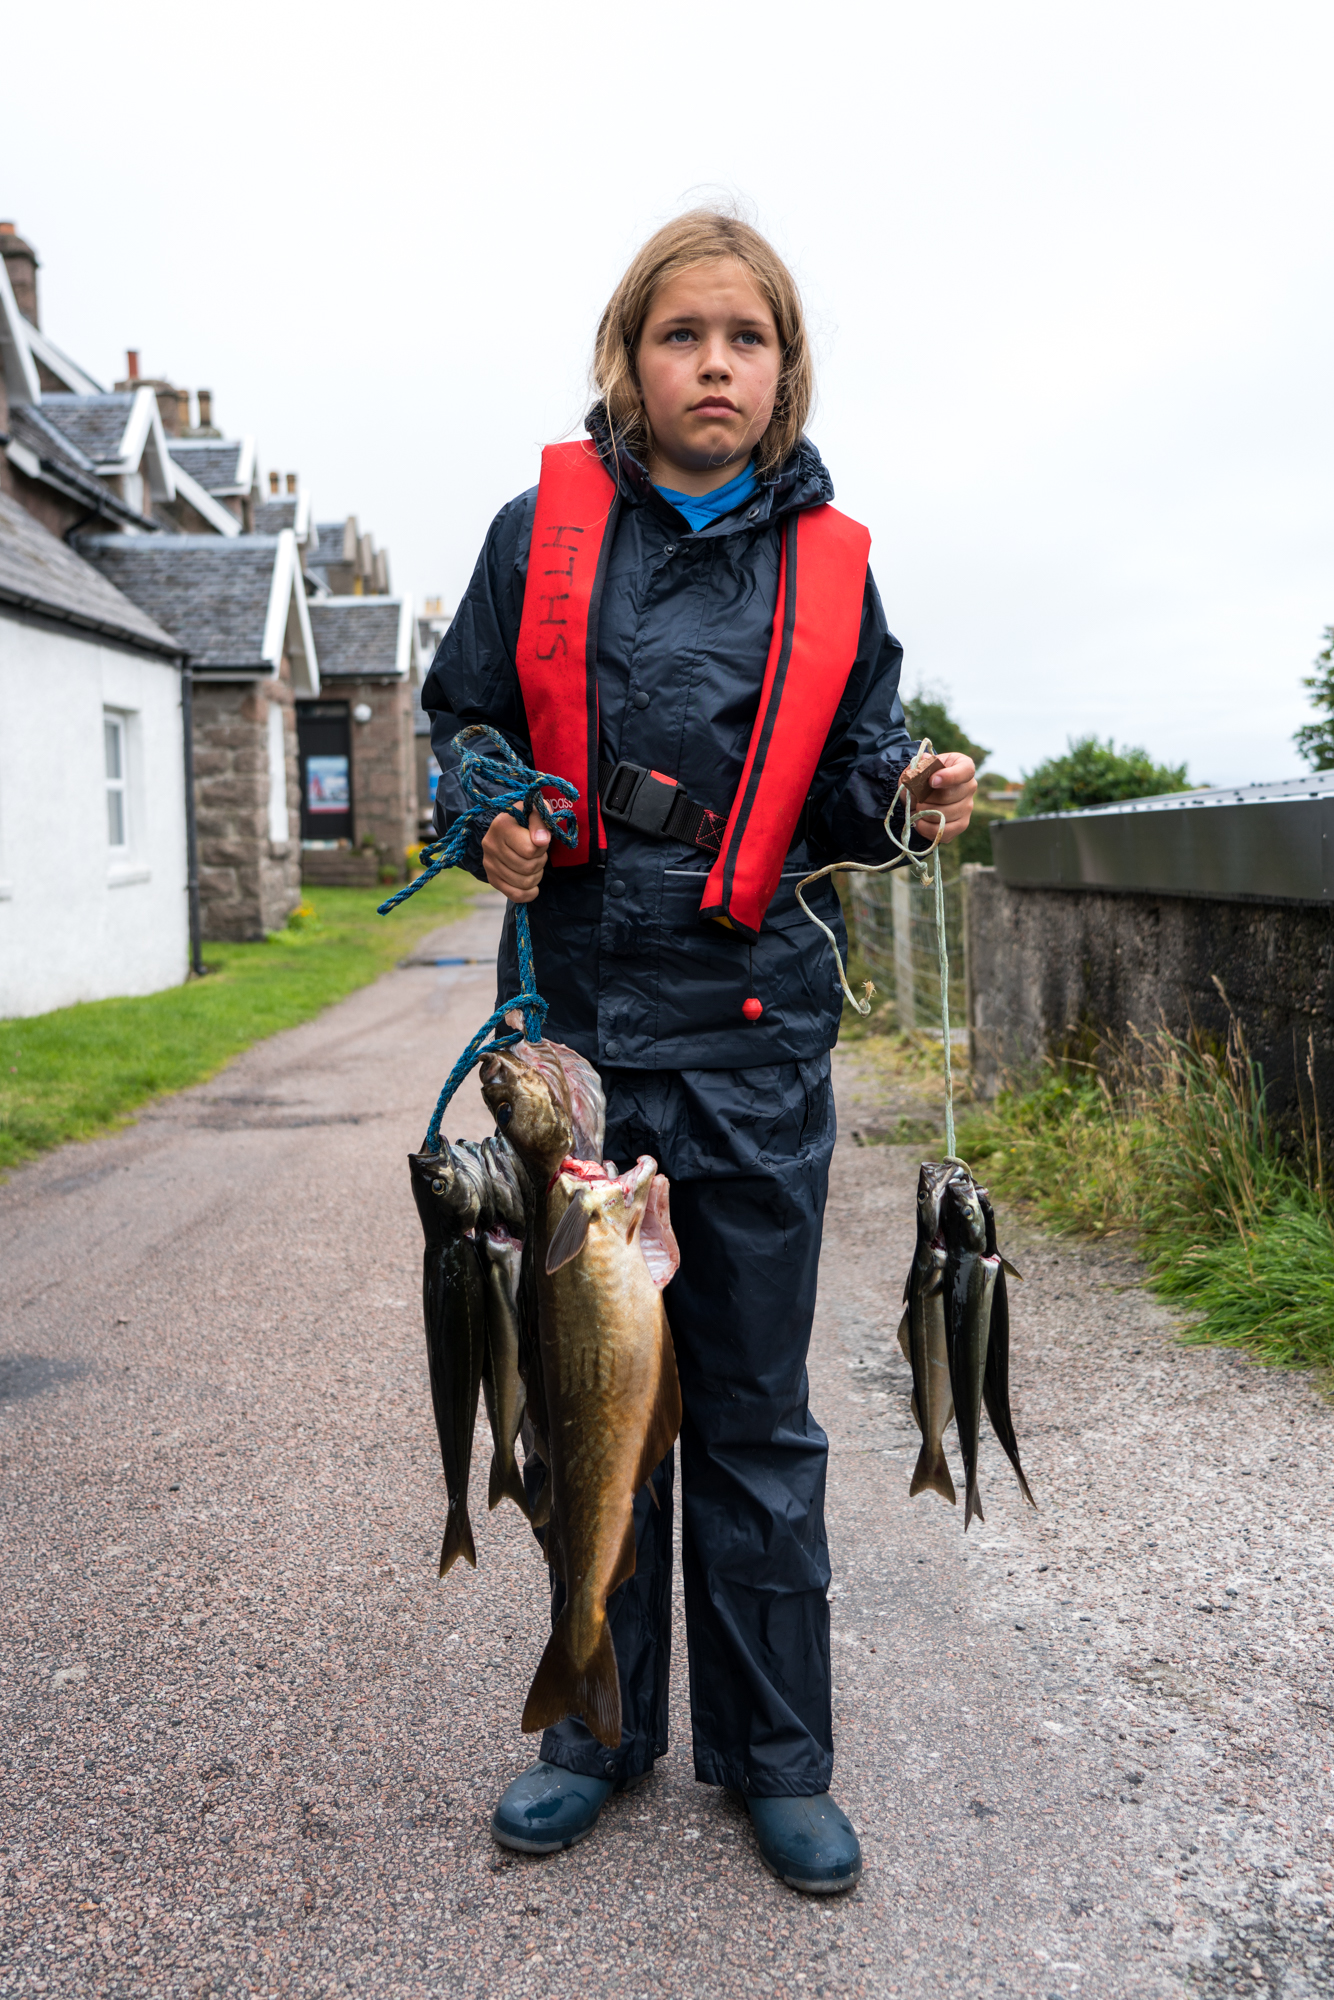 On Iona, Scotland, a young girl poses for a portrait while displaying her local daily catch.